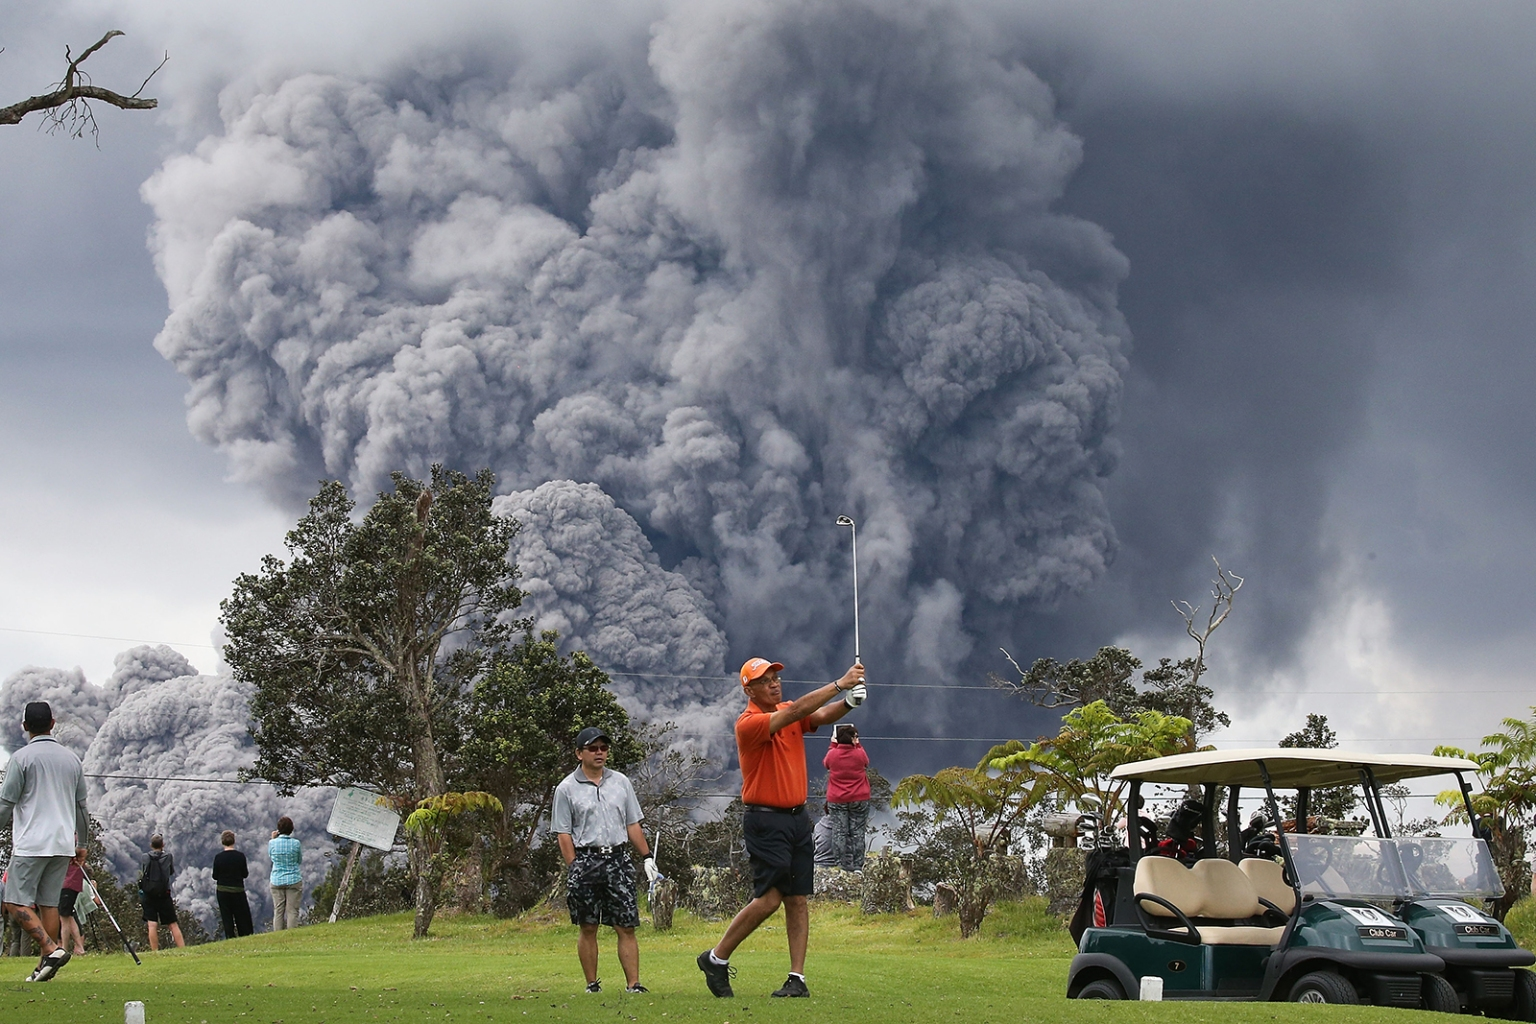 People play golf as an ash plume rises in the distance from the Kilauea volcano in Hawaii Volcanoes National Park on Hawaii's Big Island on May 15. Another violent eruption on May 17 sent ash 30,000 feet into the sky, with the U.S. Geological Survey warning that ash could fall as far as Hilo, 30 miles away. MARIO TAMA/GETTY IMAGES